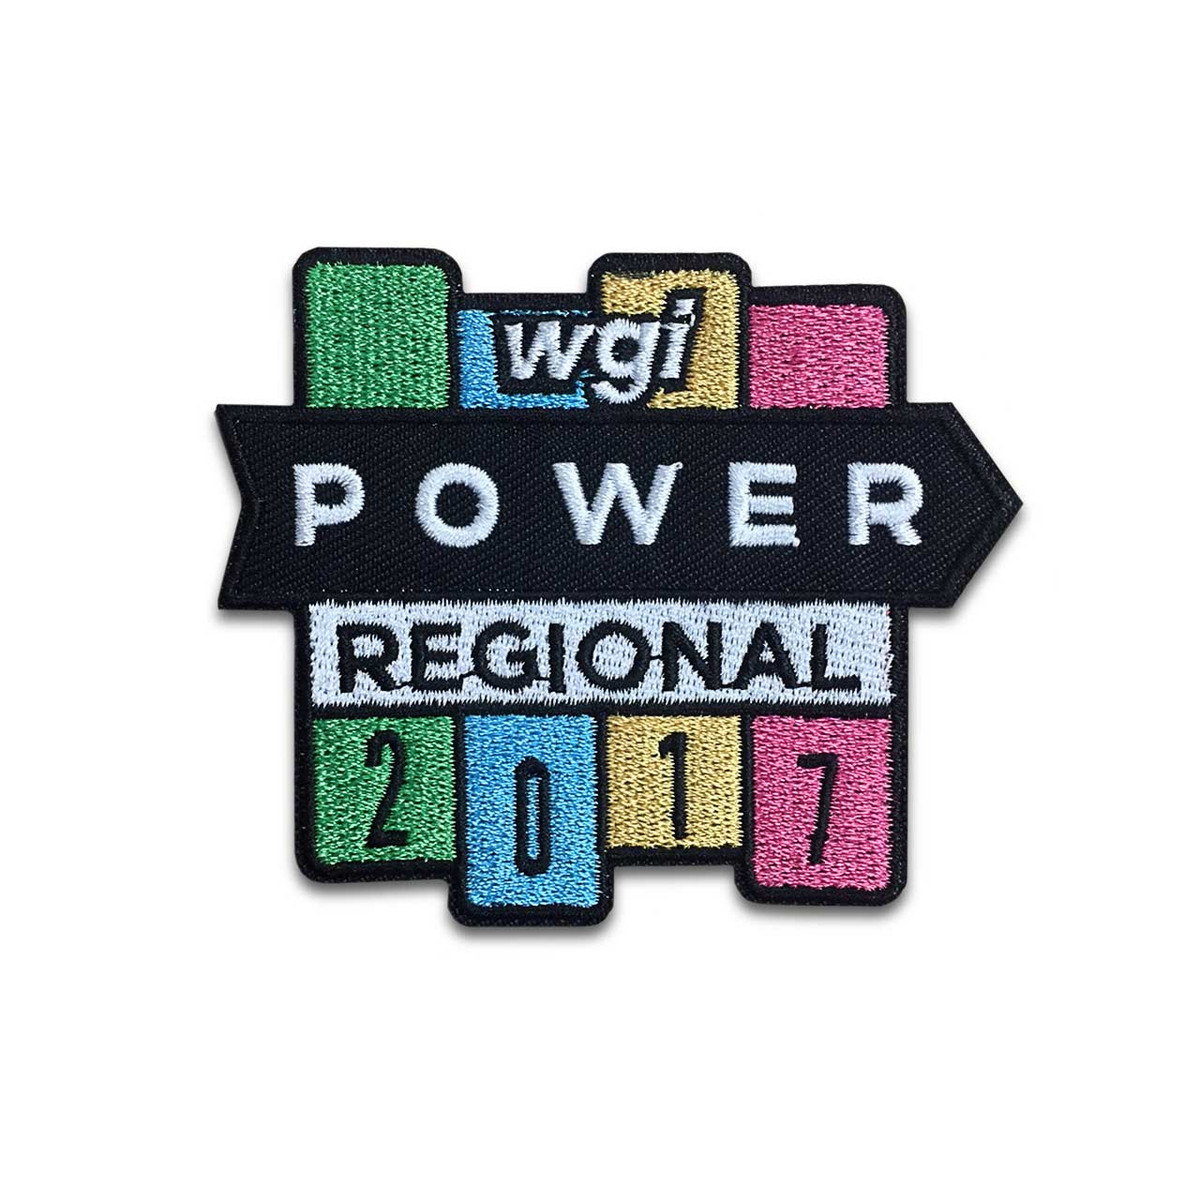 2017 WGI Power Regional Championship Patch